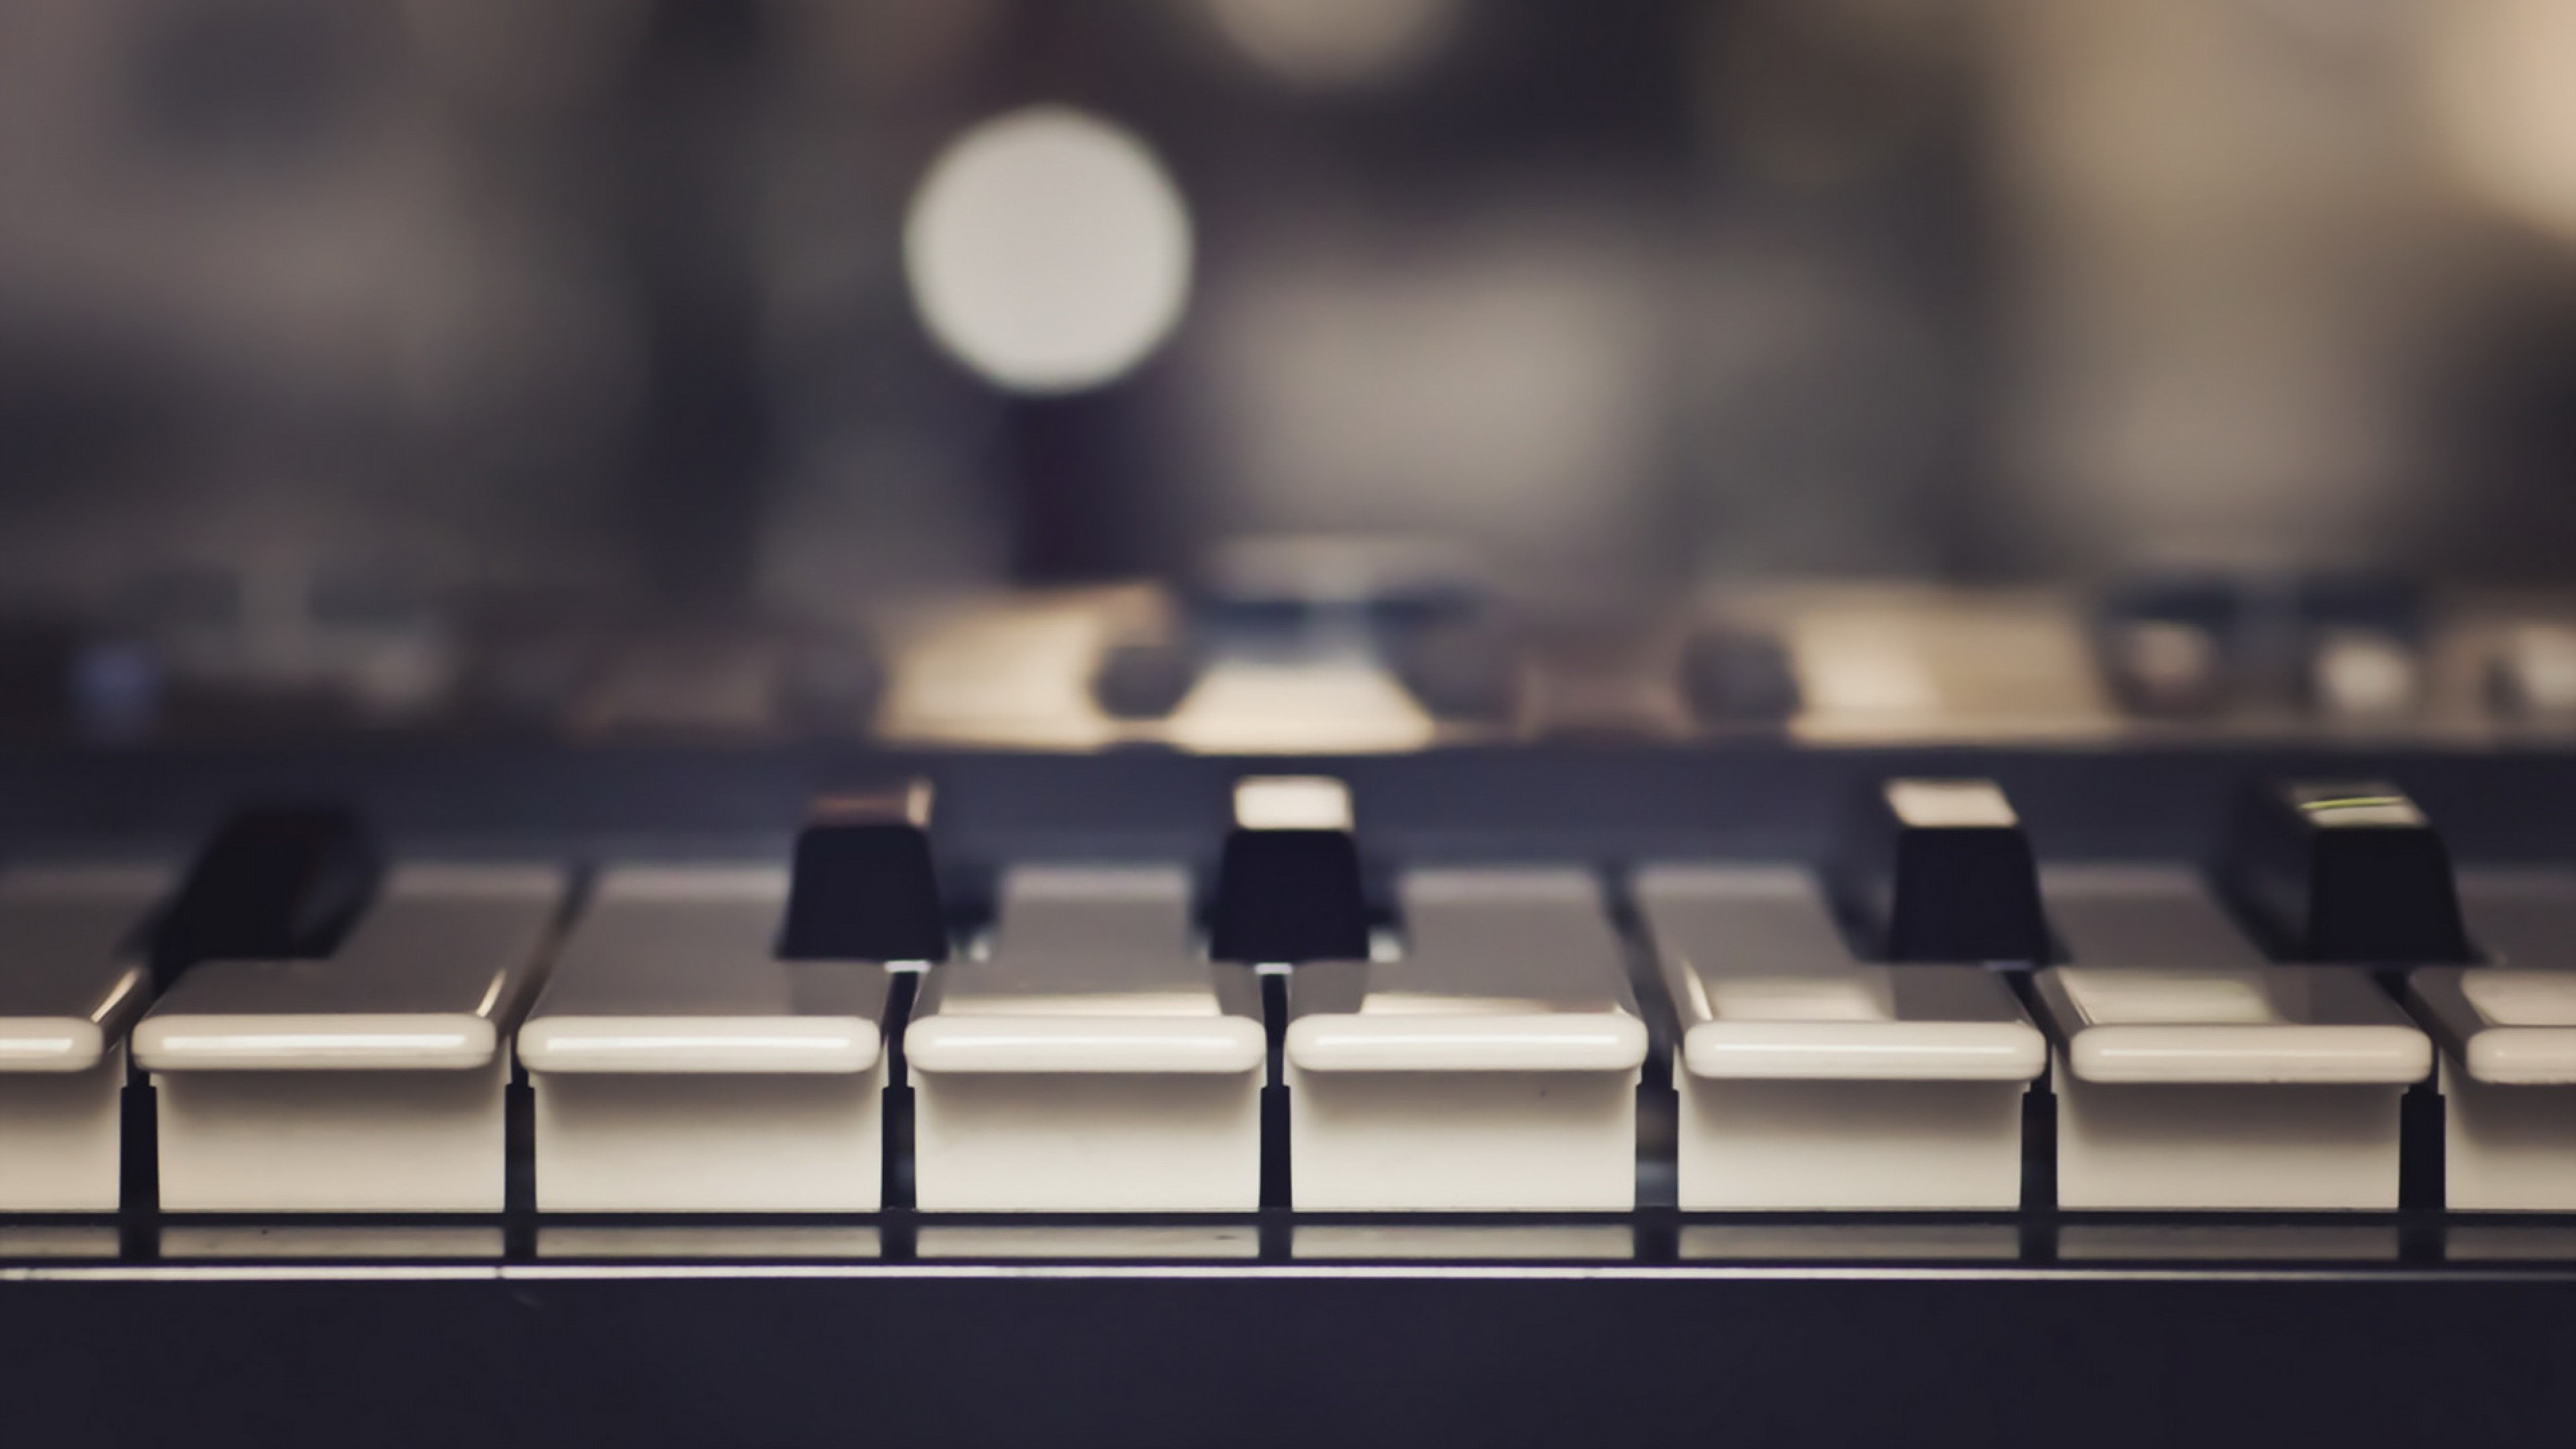 Piaono Music Keys